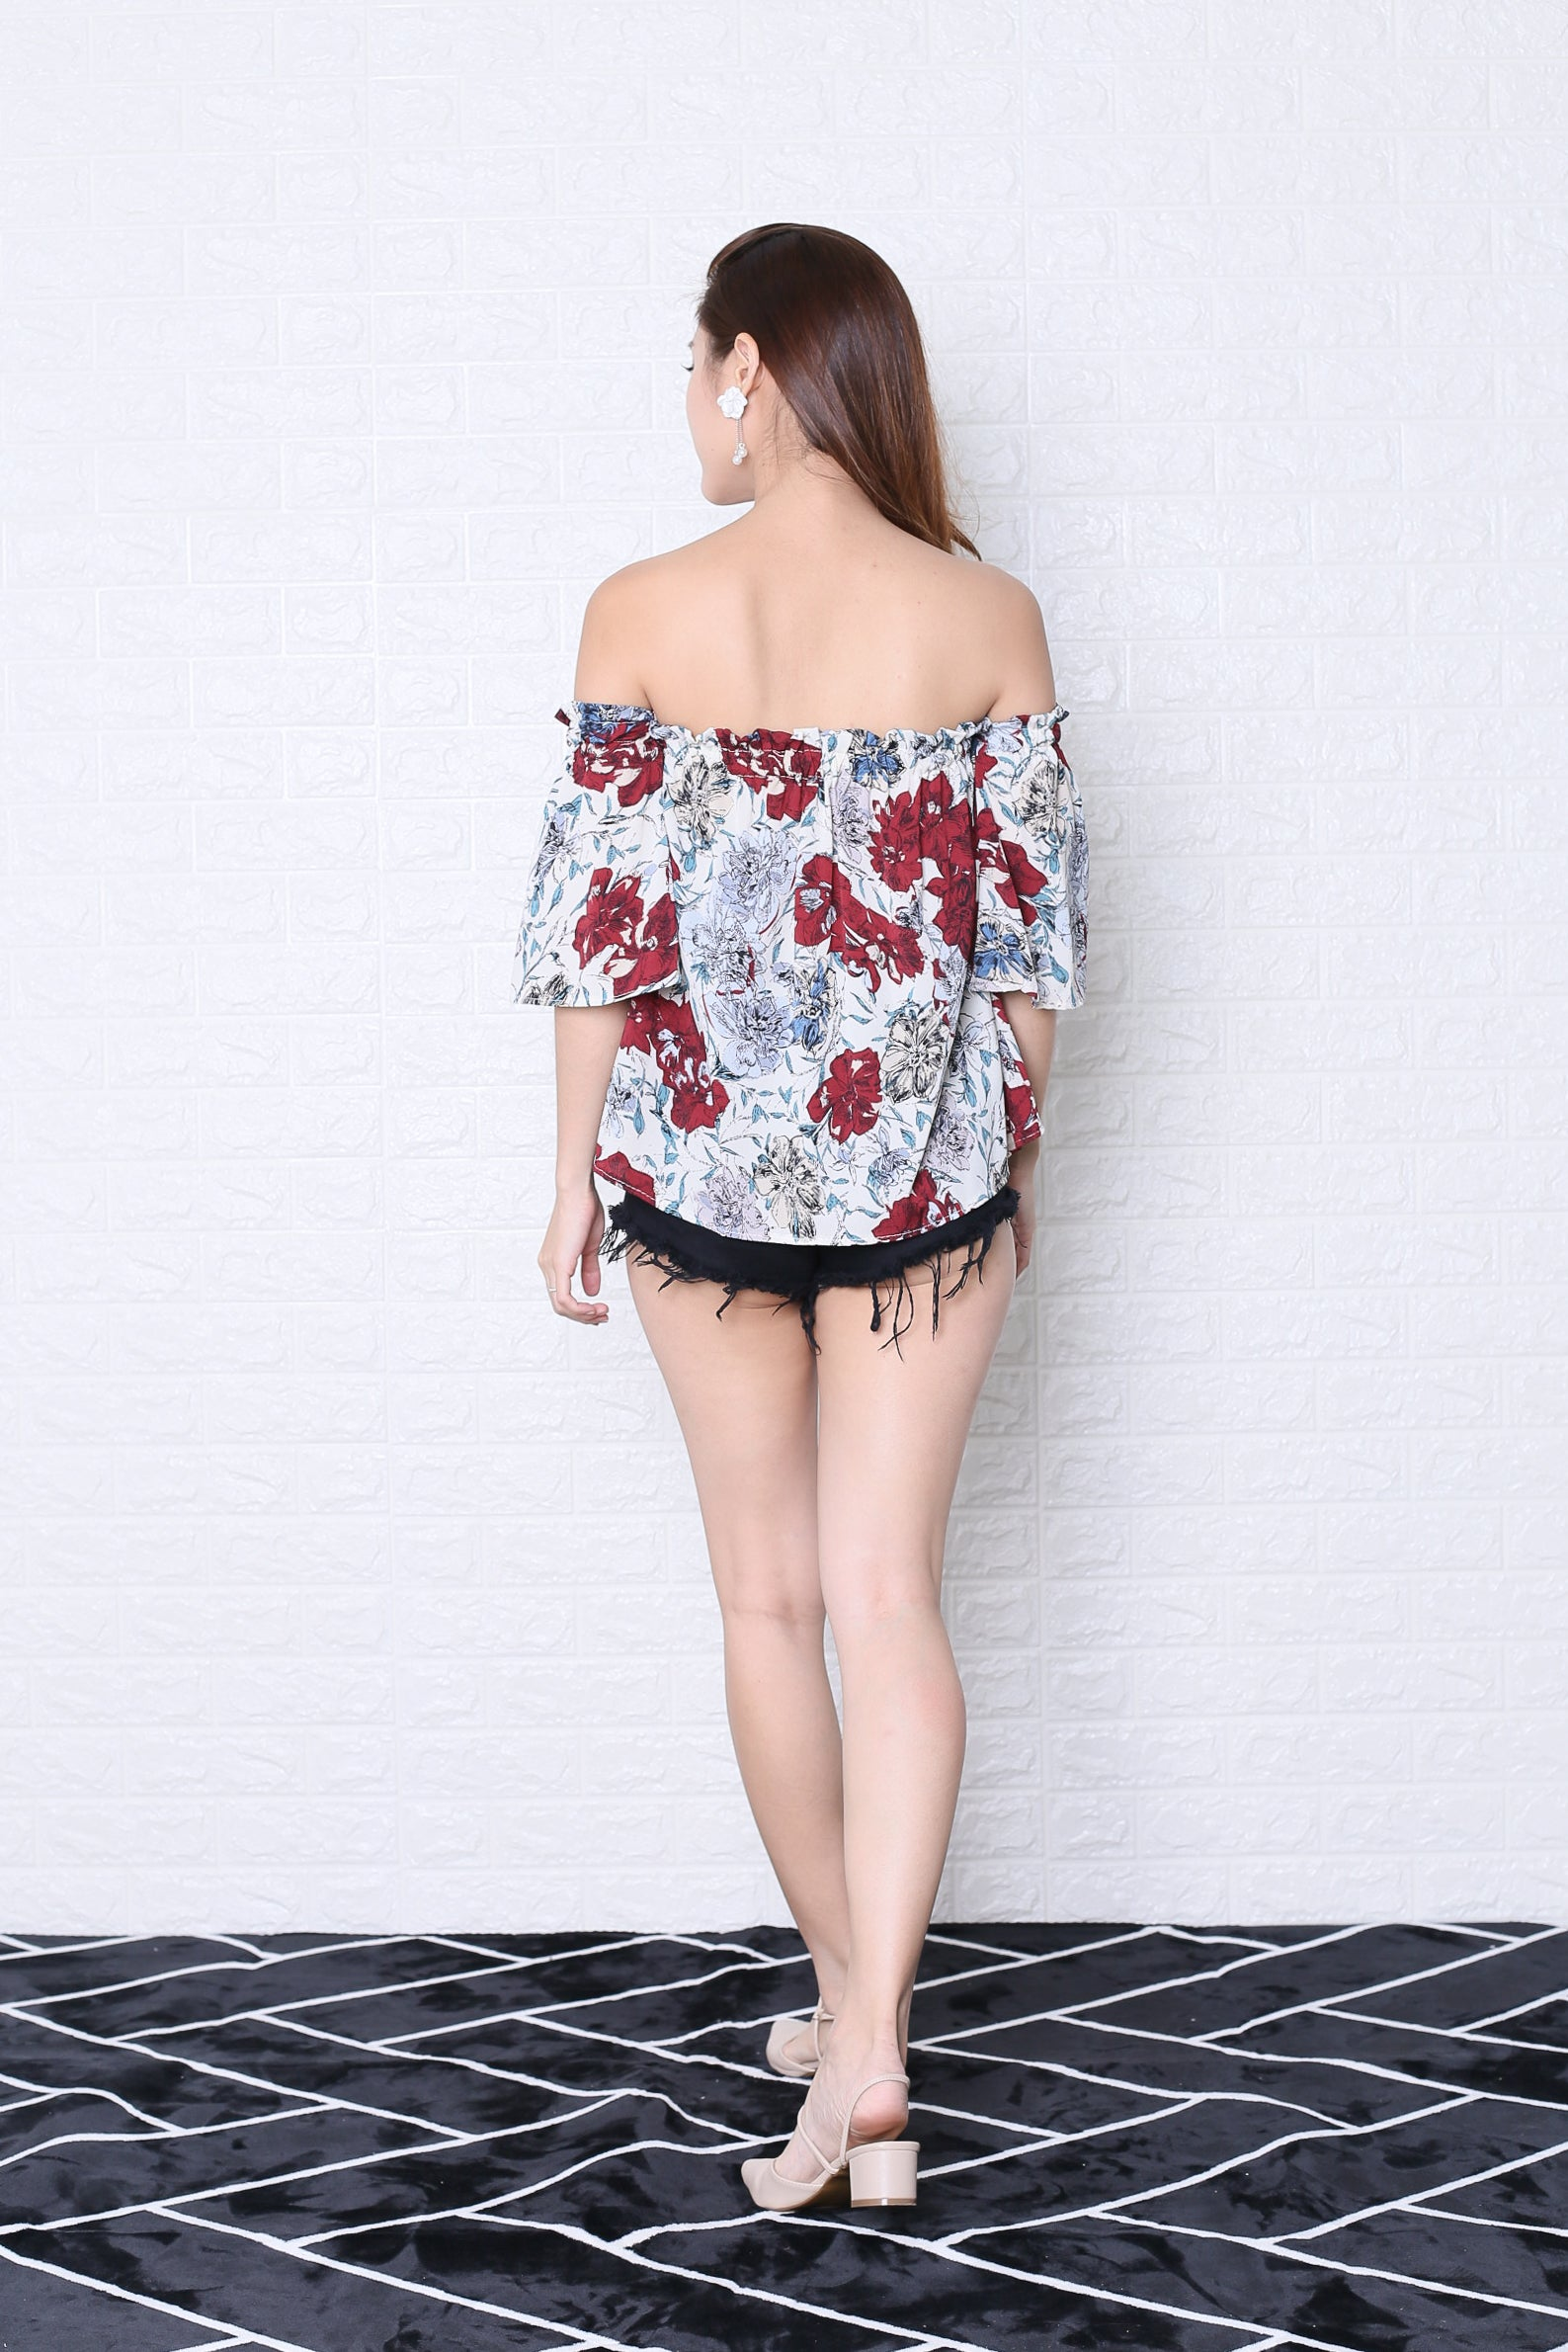 FLORIN ABSTRACT FLORAL TOP IN OFF WHITE